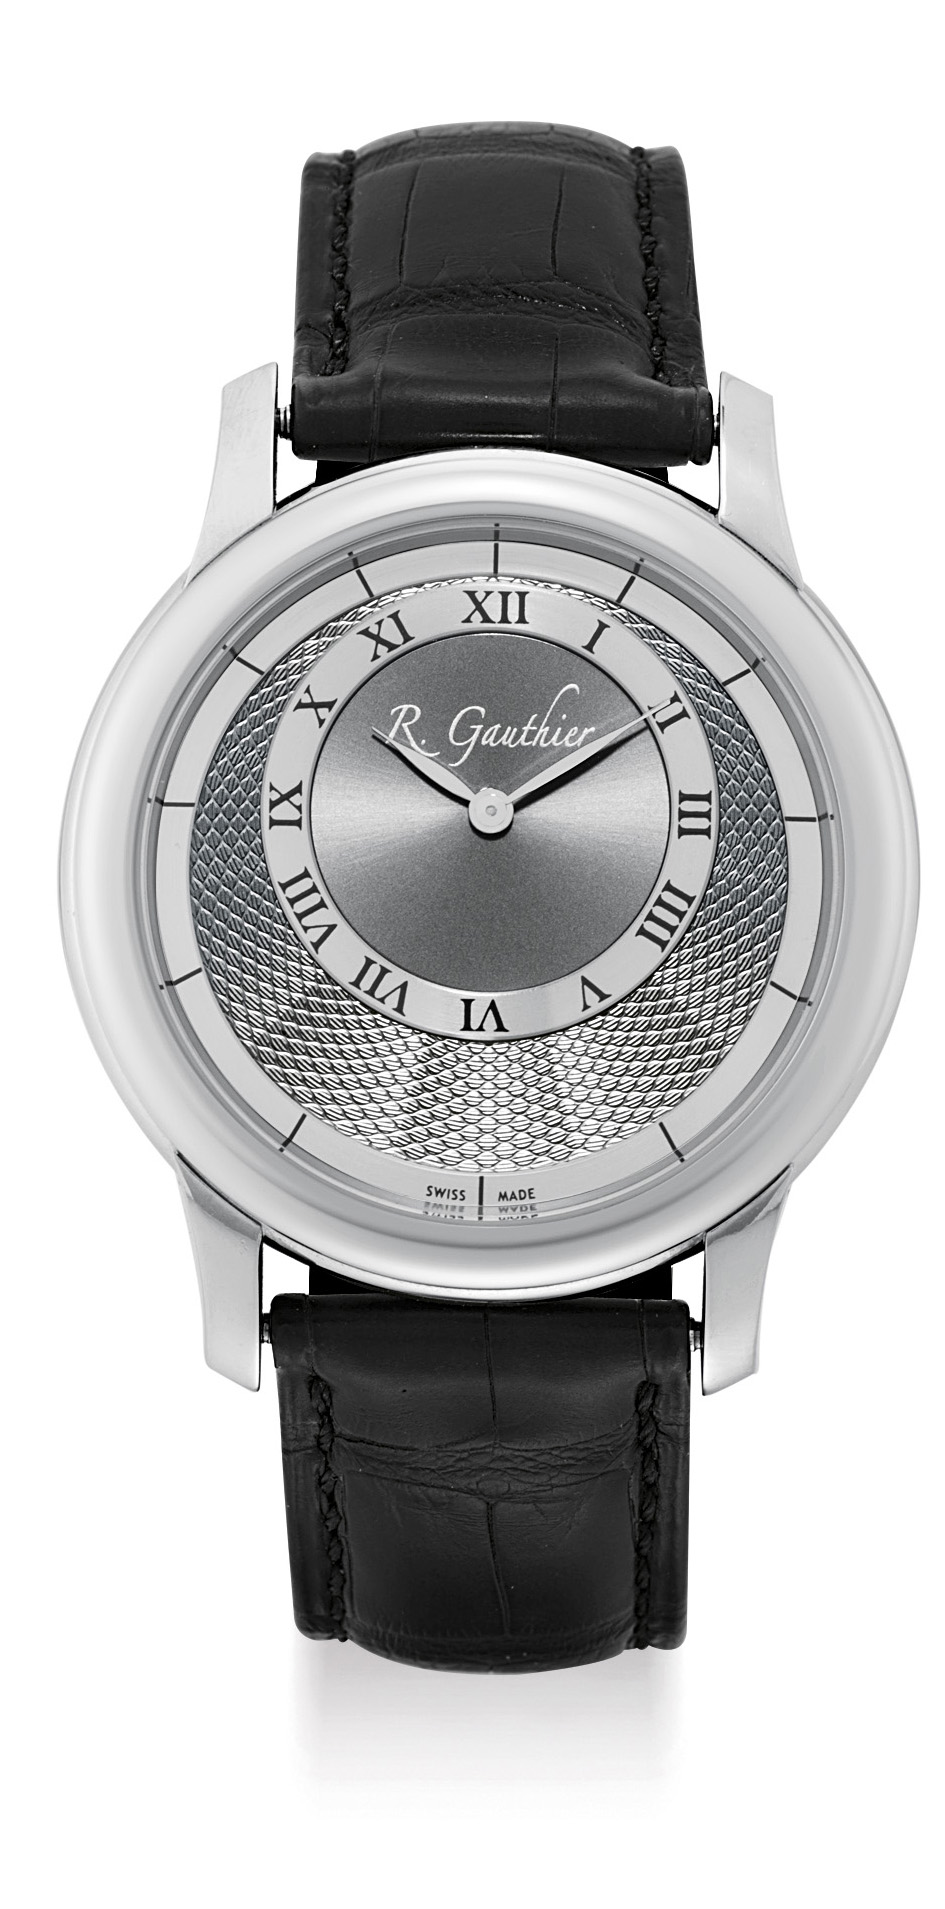 ROMAIN GAUTHIER, A FINE PLATINUM LIMITED EDITION WRISTWATCH WITH ECCENTRIC DIAL